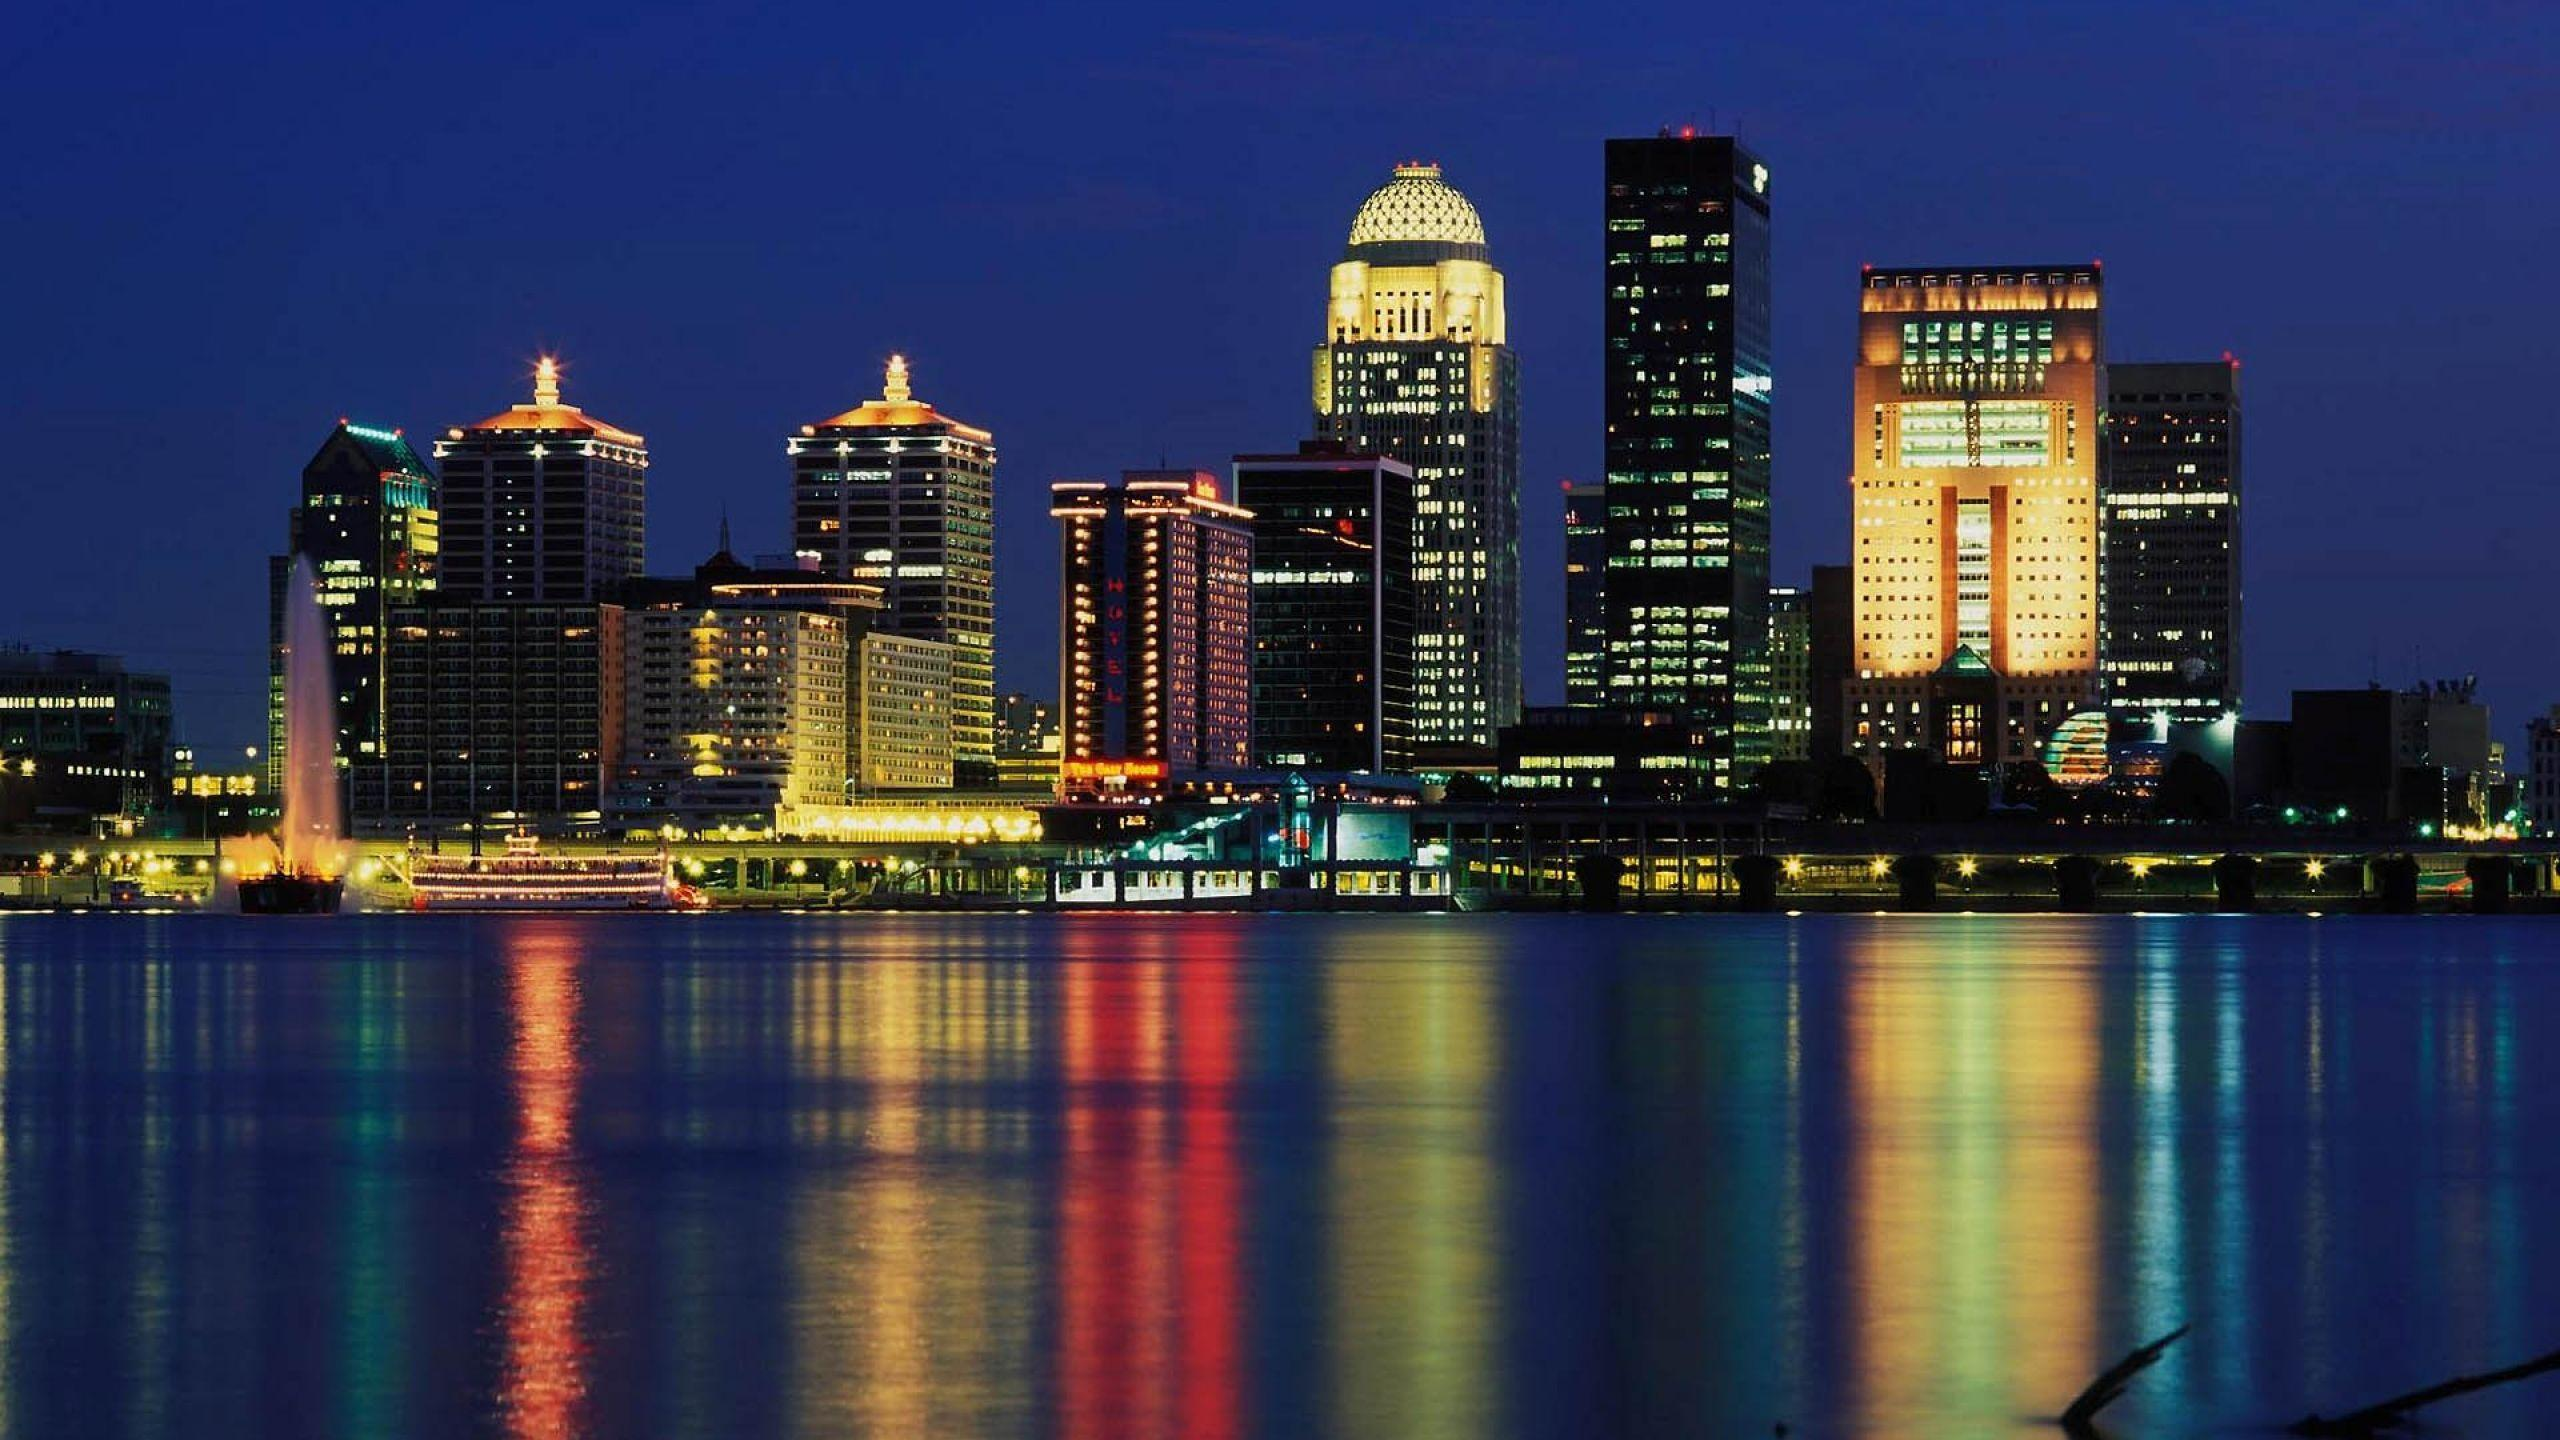 Download Wallpapers 2560x1440 Louisville, Skyline, Usa, Skyscraper